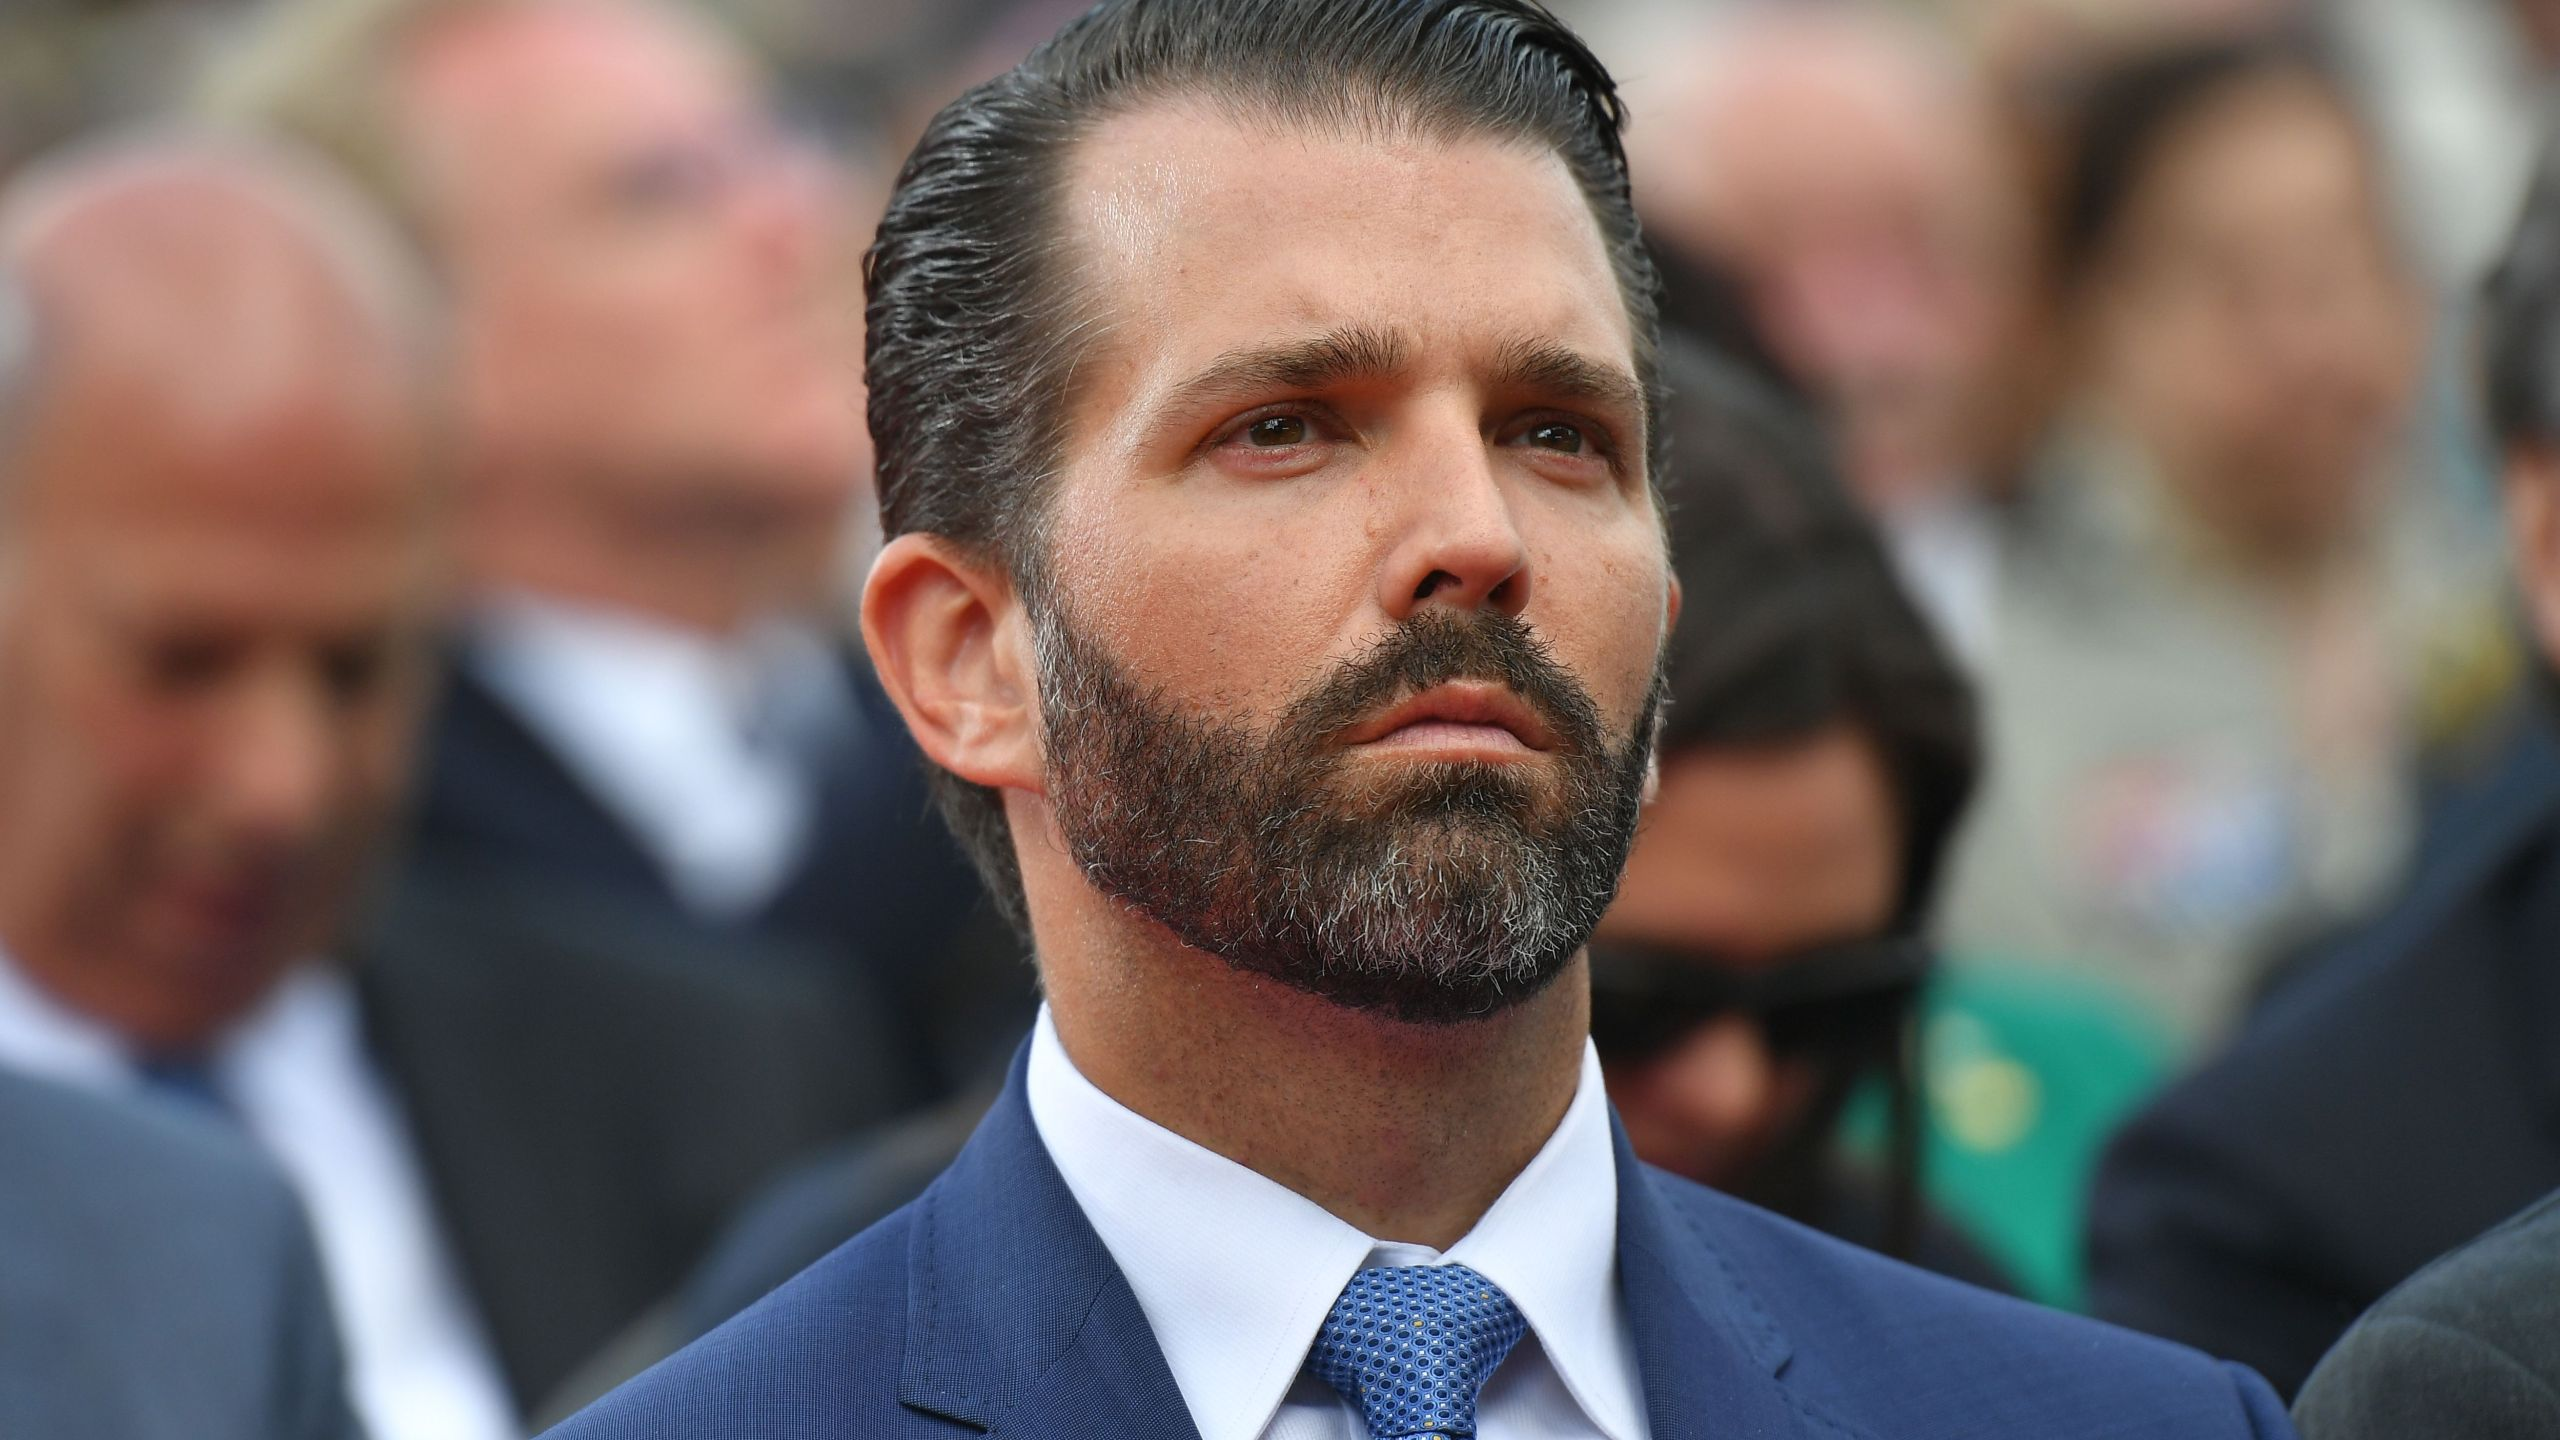 Donald Trump Jr. attends a French-U.S. ceremony at the Normandy American Cemetery and Memorial in Colleville-sur-Mer, Normandy on June 6, 2019. (Credit: MANDEL NGAN/AFP/Getty Images)